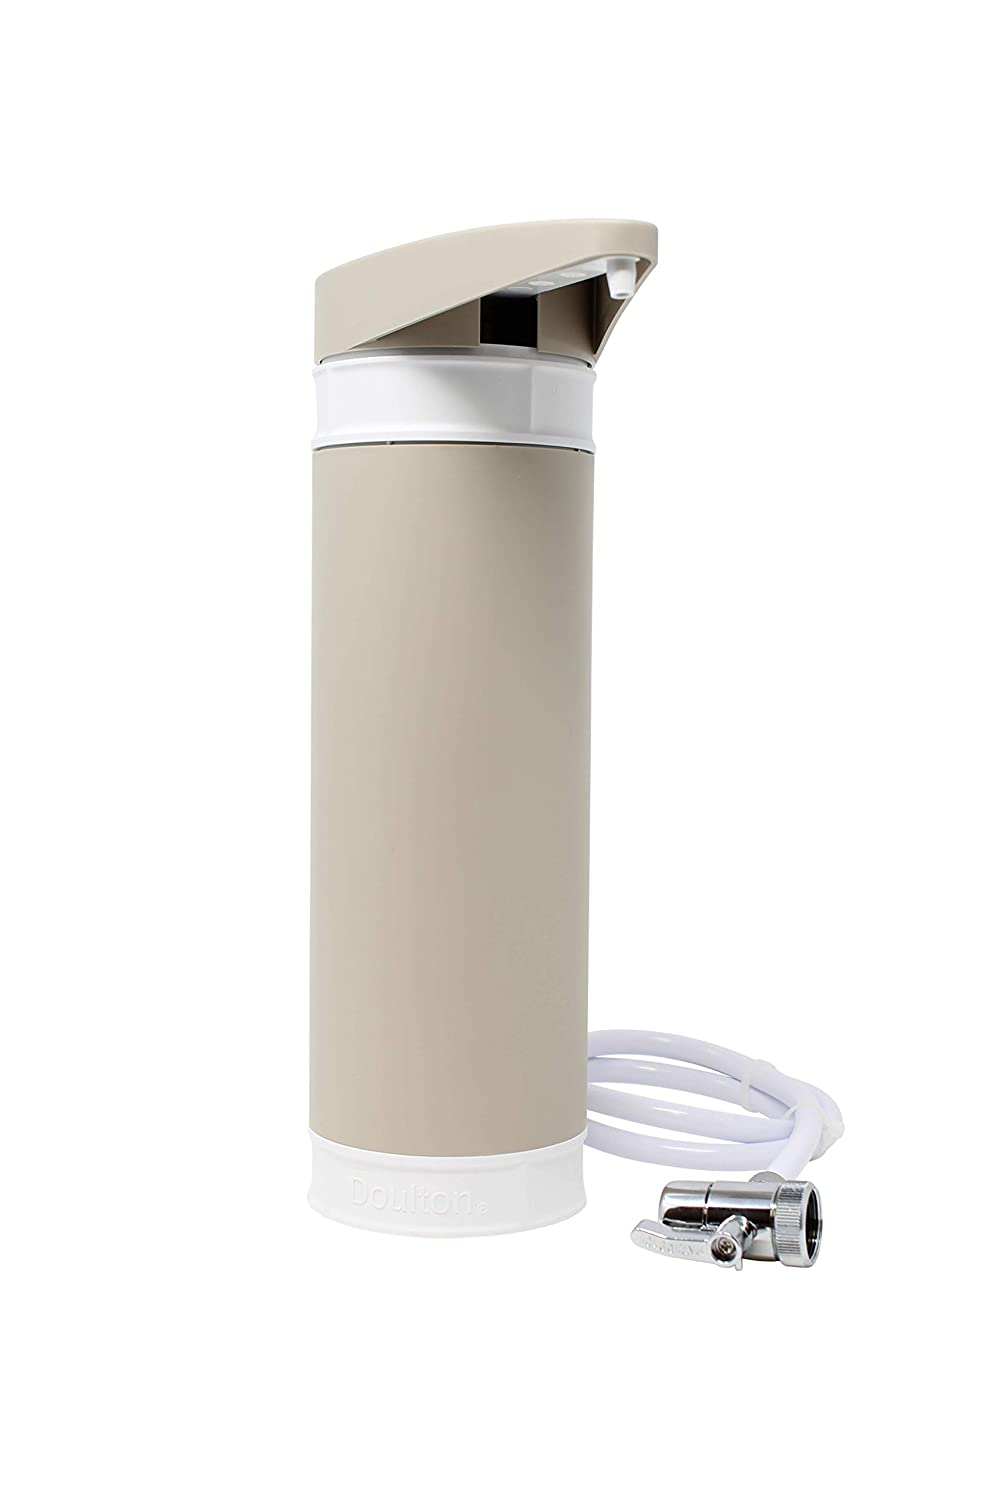 Doulton Filtadapt Countertop Drinking Water Filter Housing in Pebble with a Doulton BioTect Ultra Ceramic Drinking Water Filter Cartridge Candle ¦ Easy Tap fit ¦ 10 inch ¦ M12 thread ¦ W9331310 DOULTON-W9331310